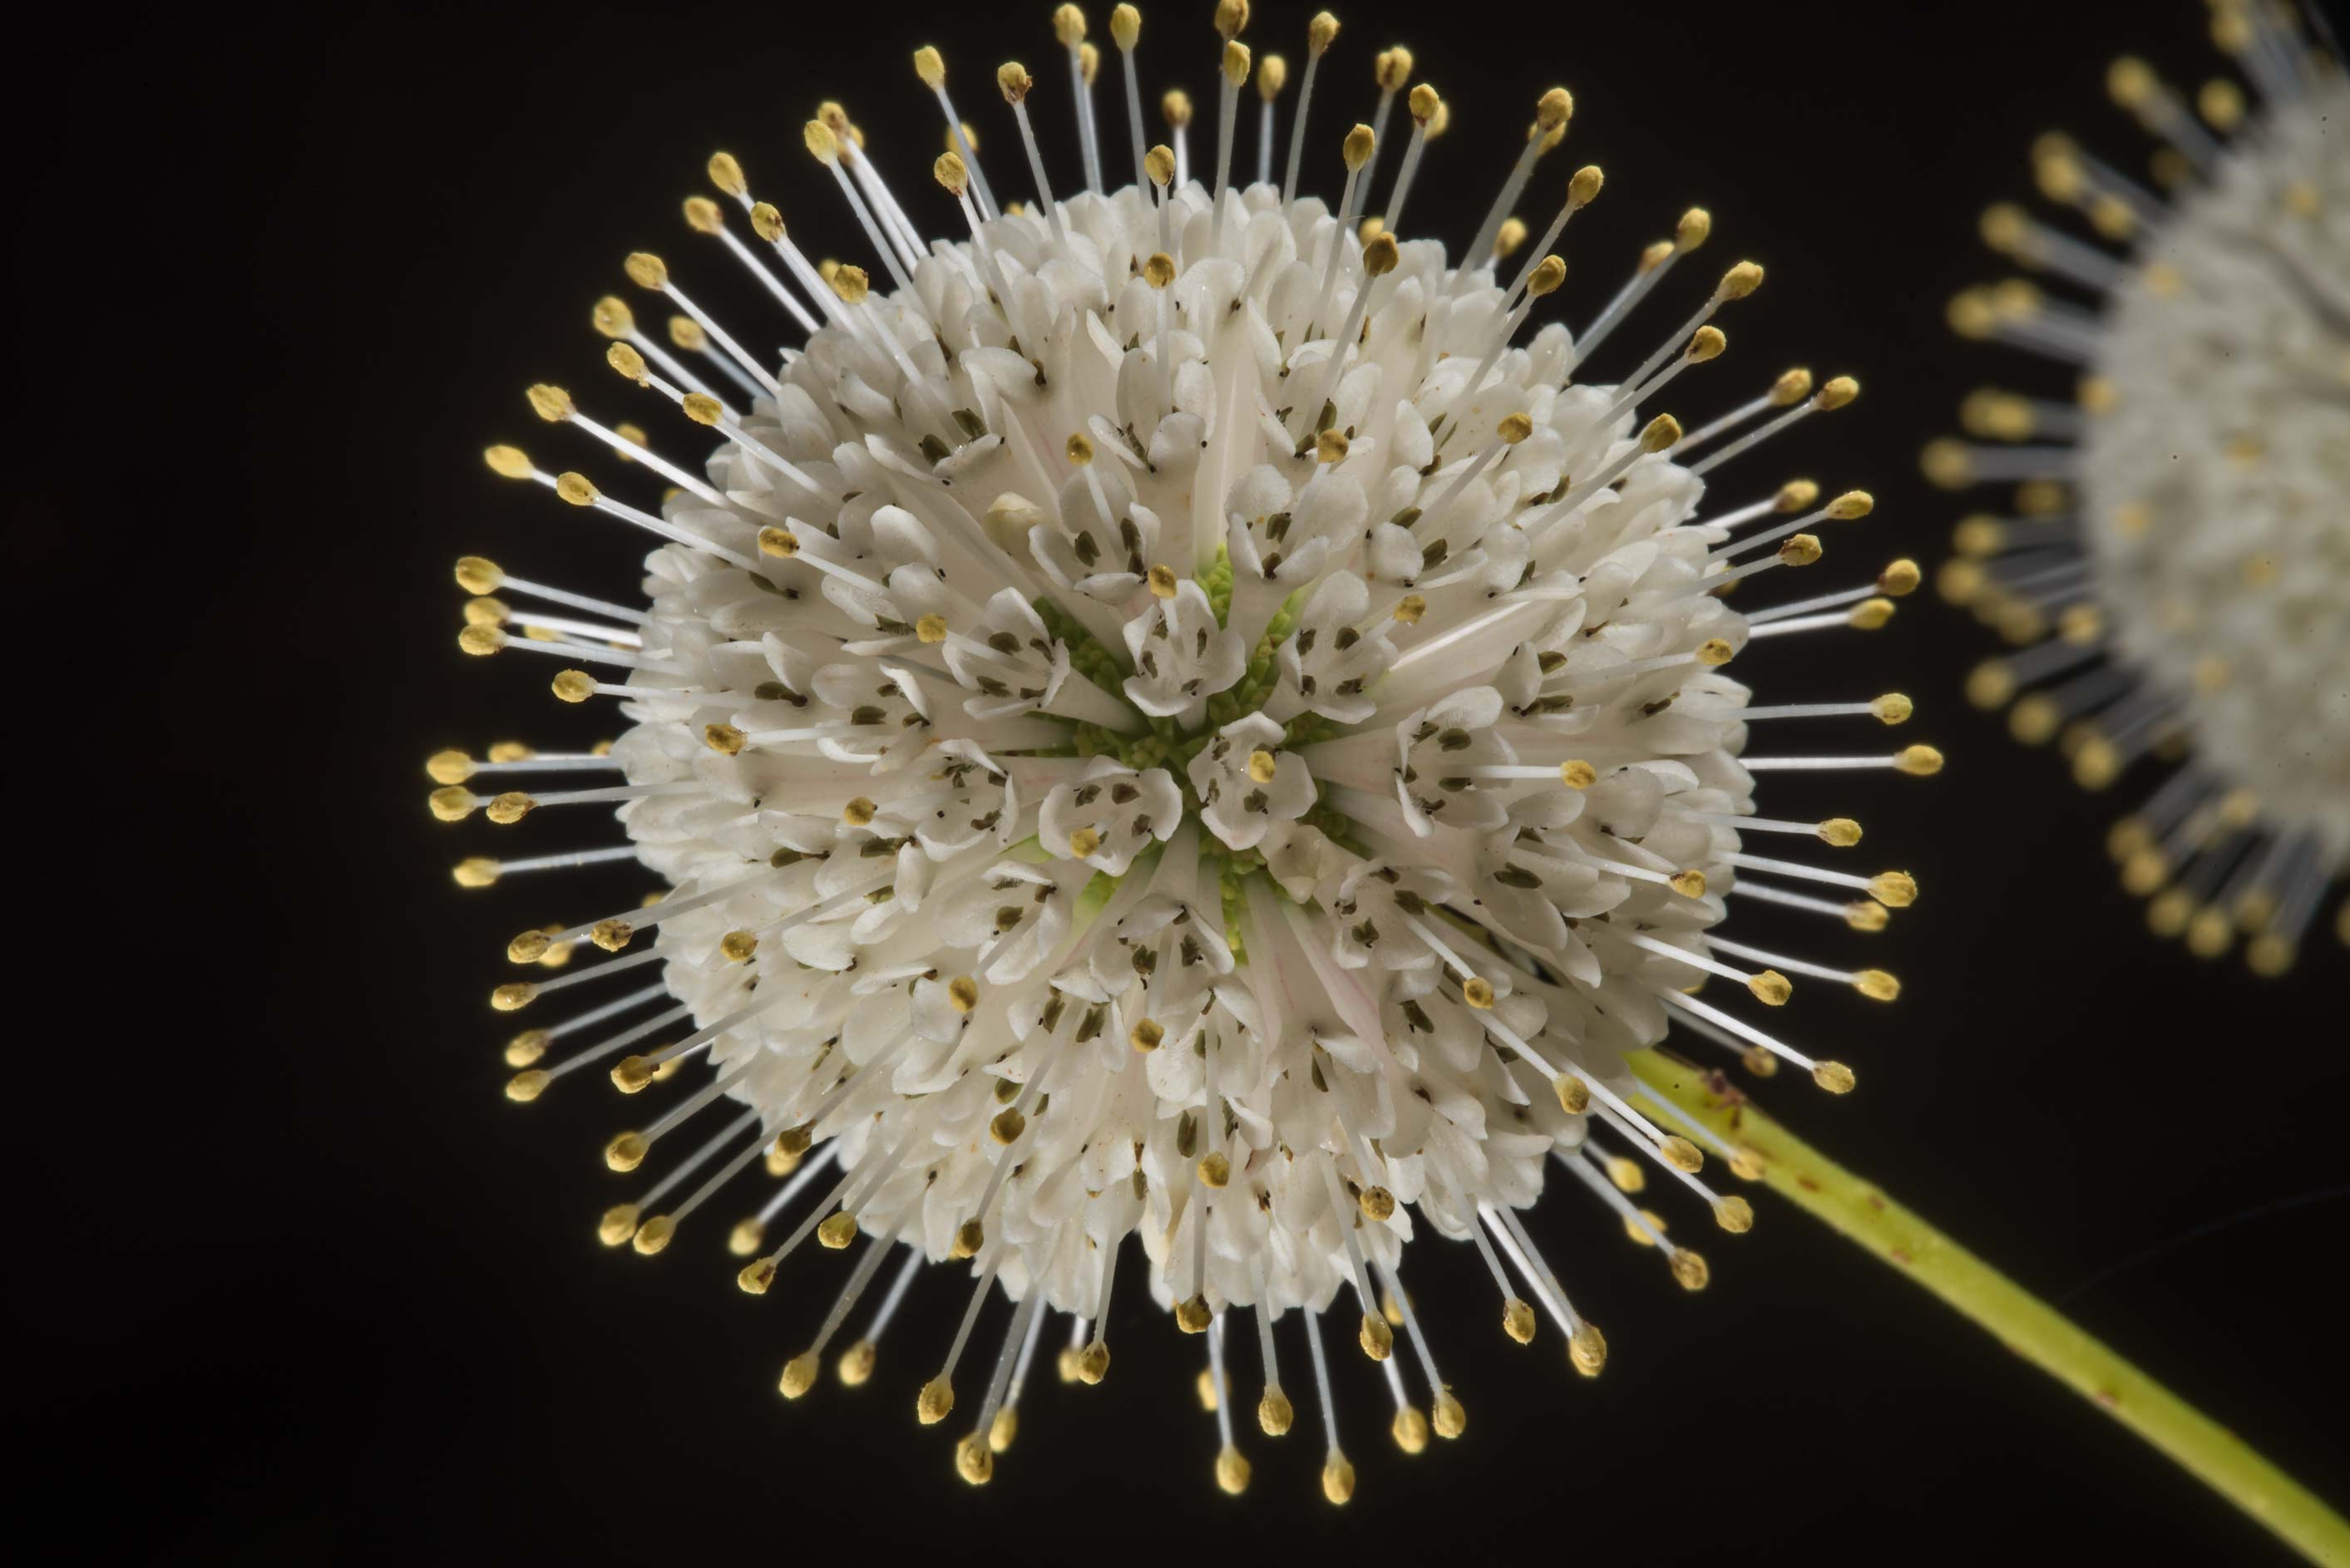 Globular flower of buttonbush (Cephalanthus...of Lake Somerville State Park, Texas